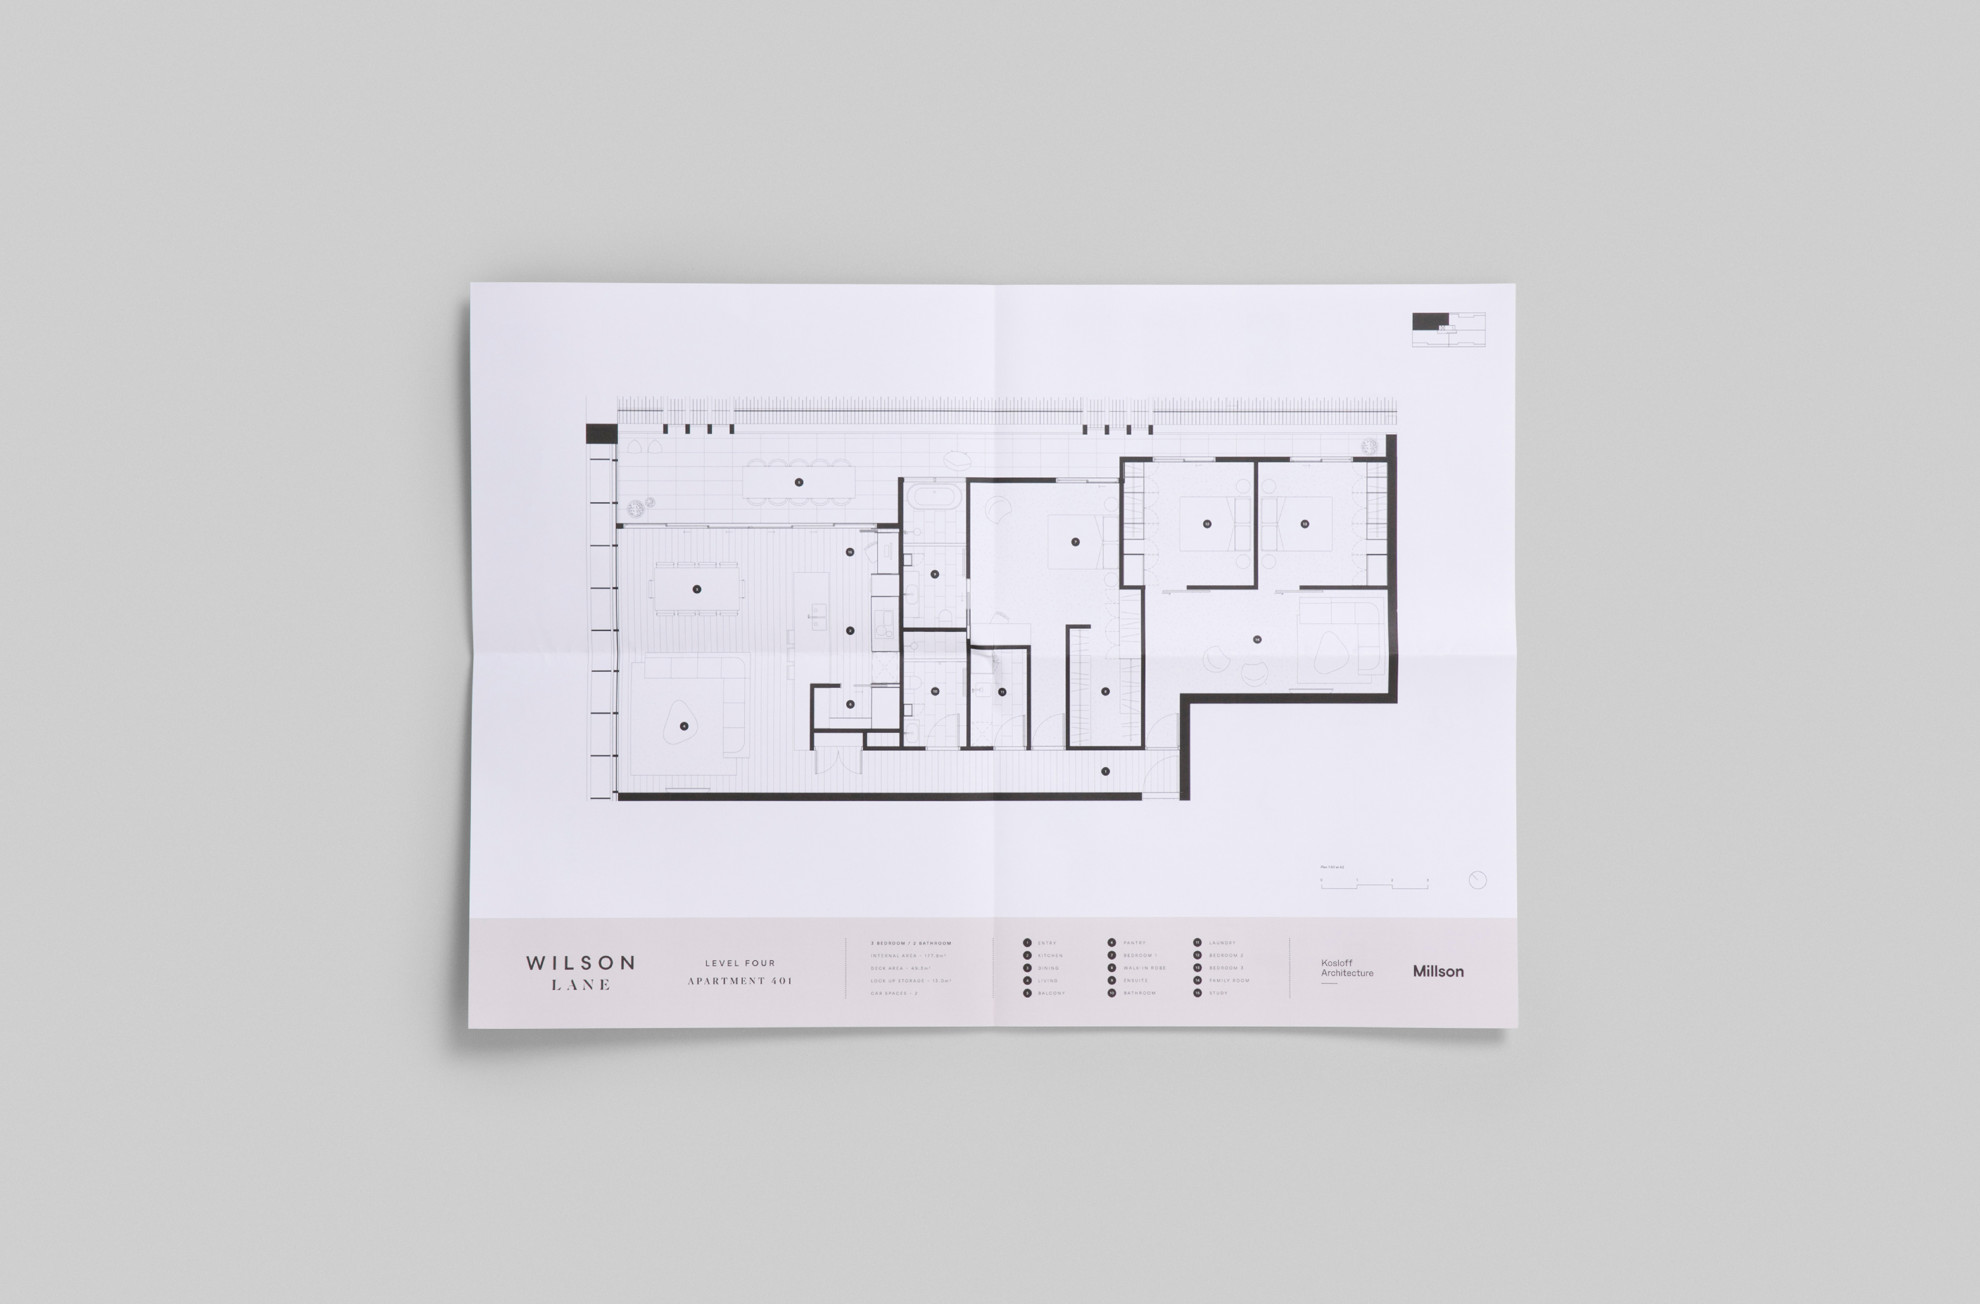 Wilson Lane - Floorplan